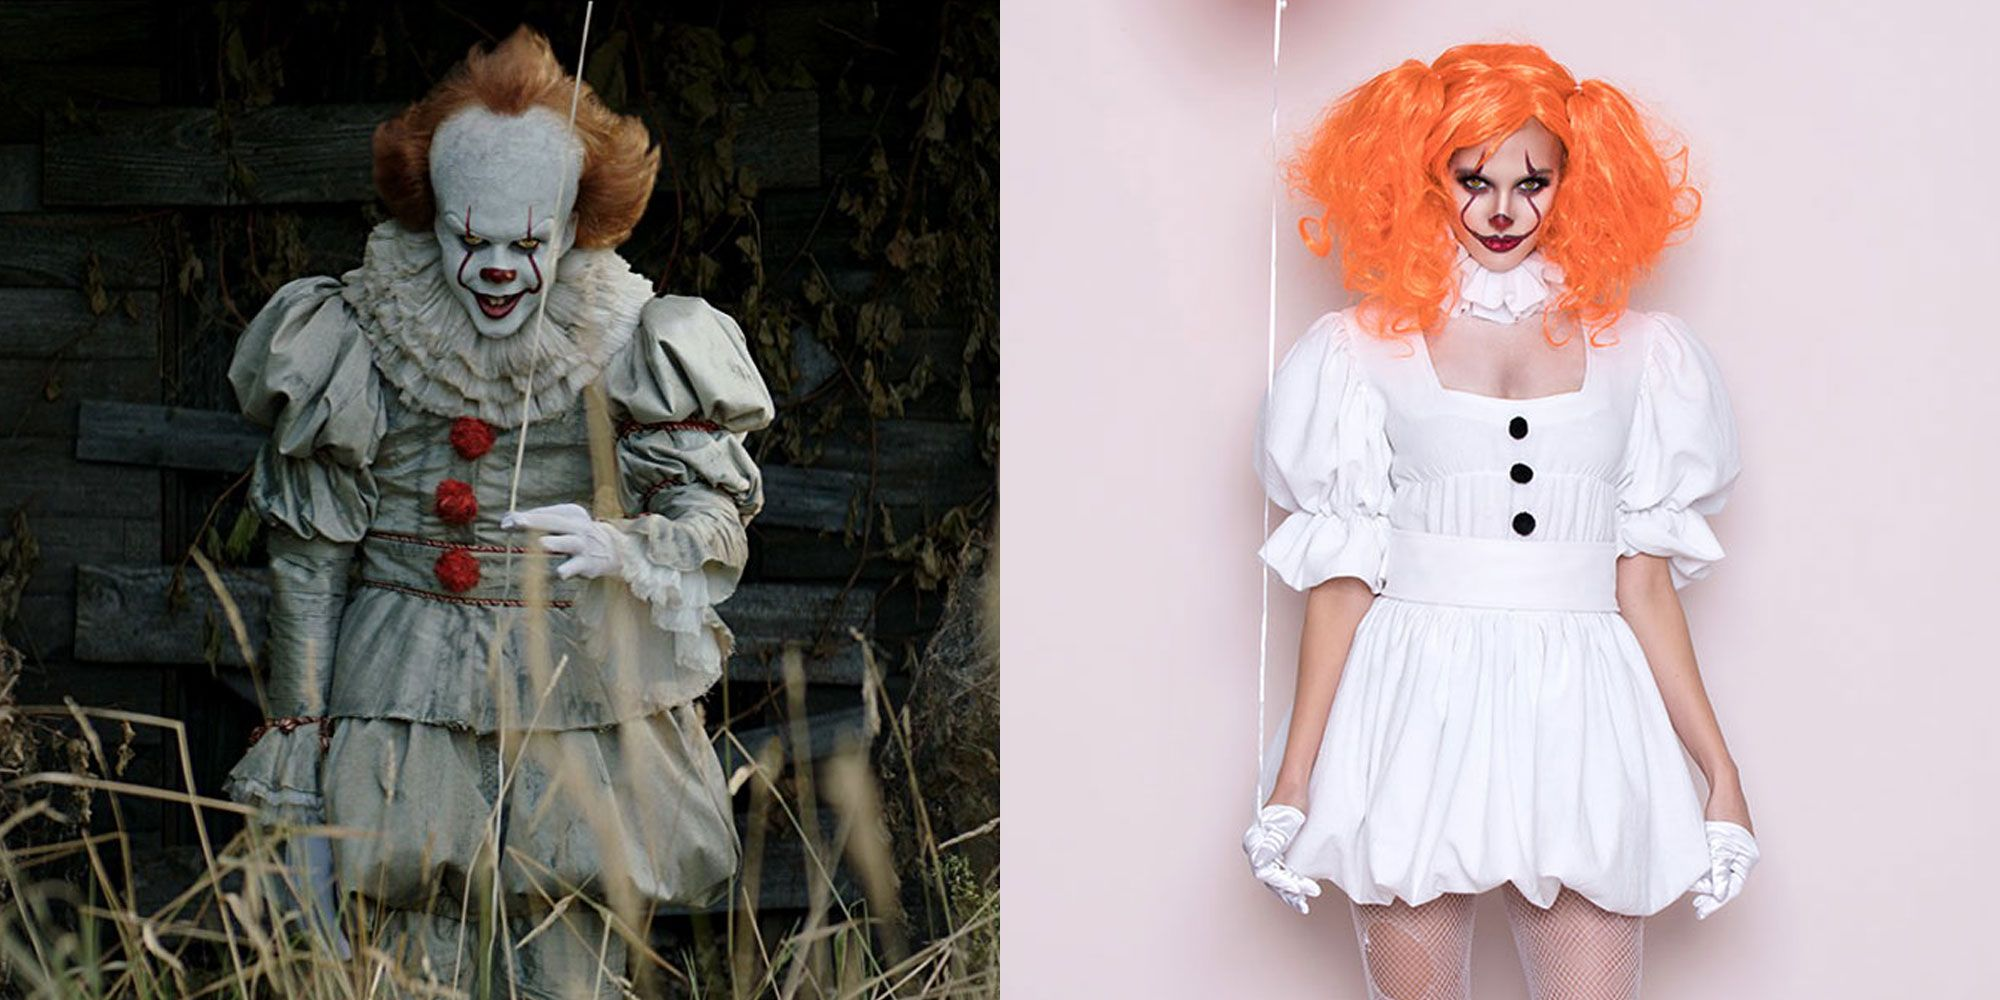 This Sexy Pennywise Costume Is Scary Yet Funny